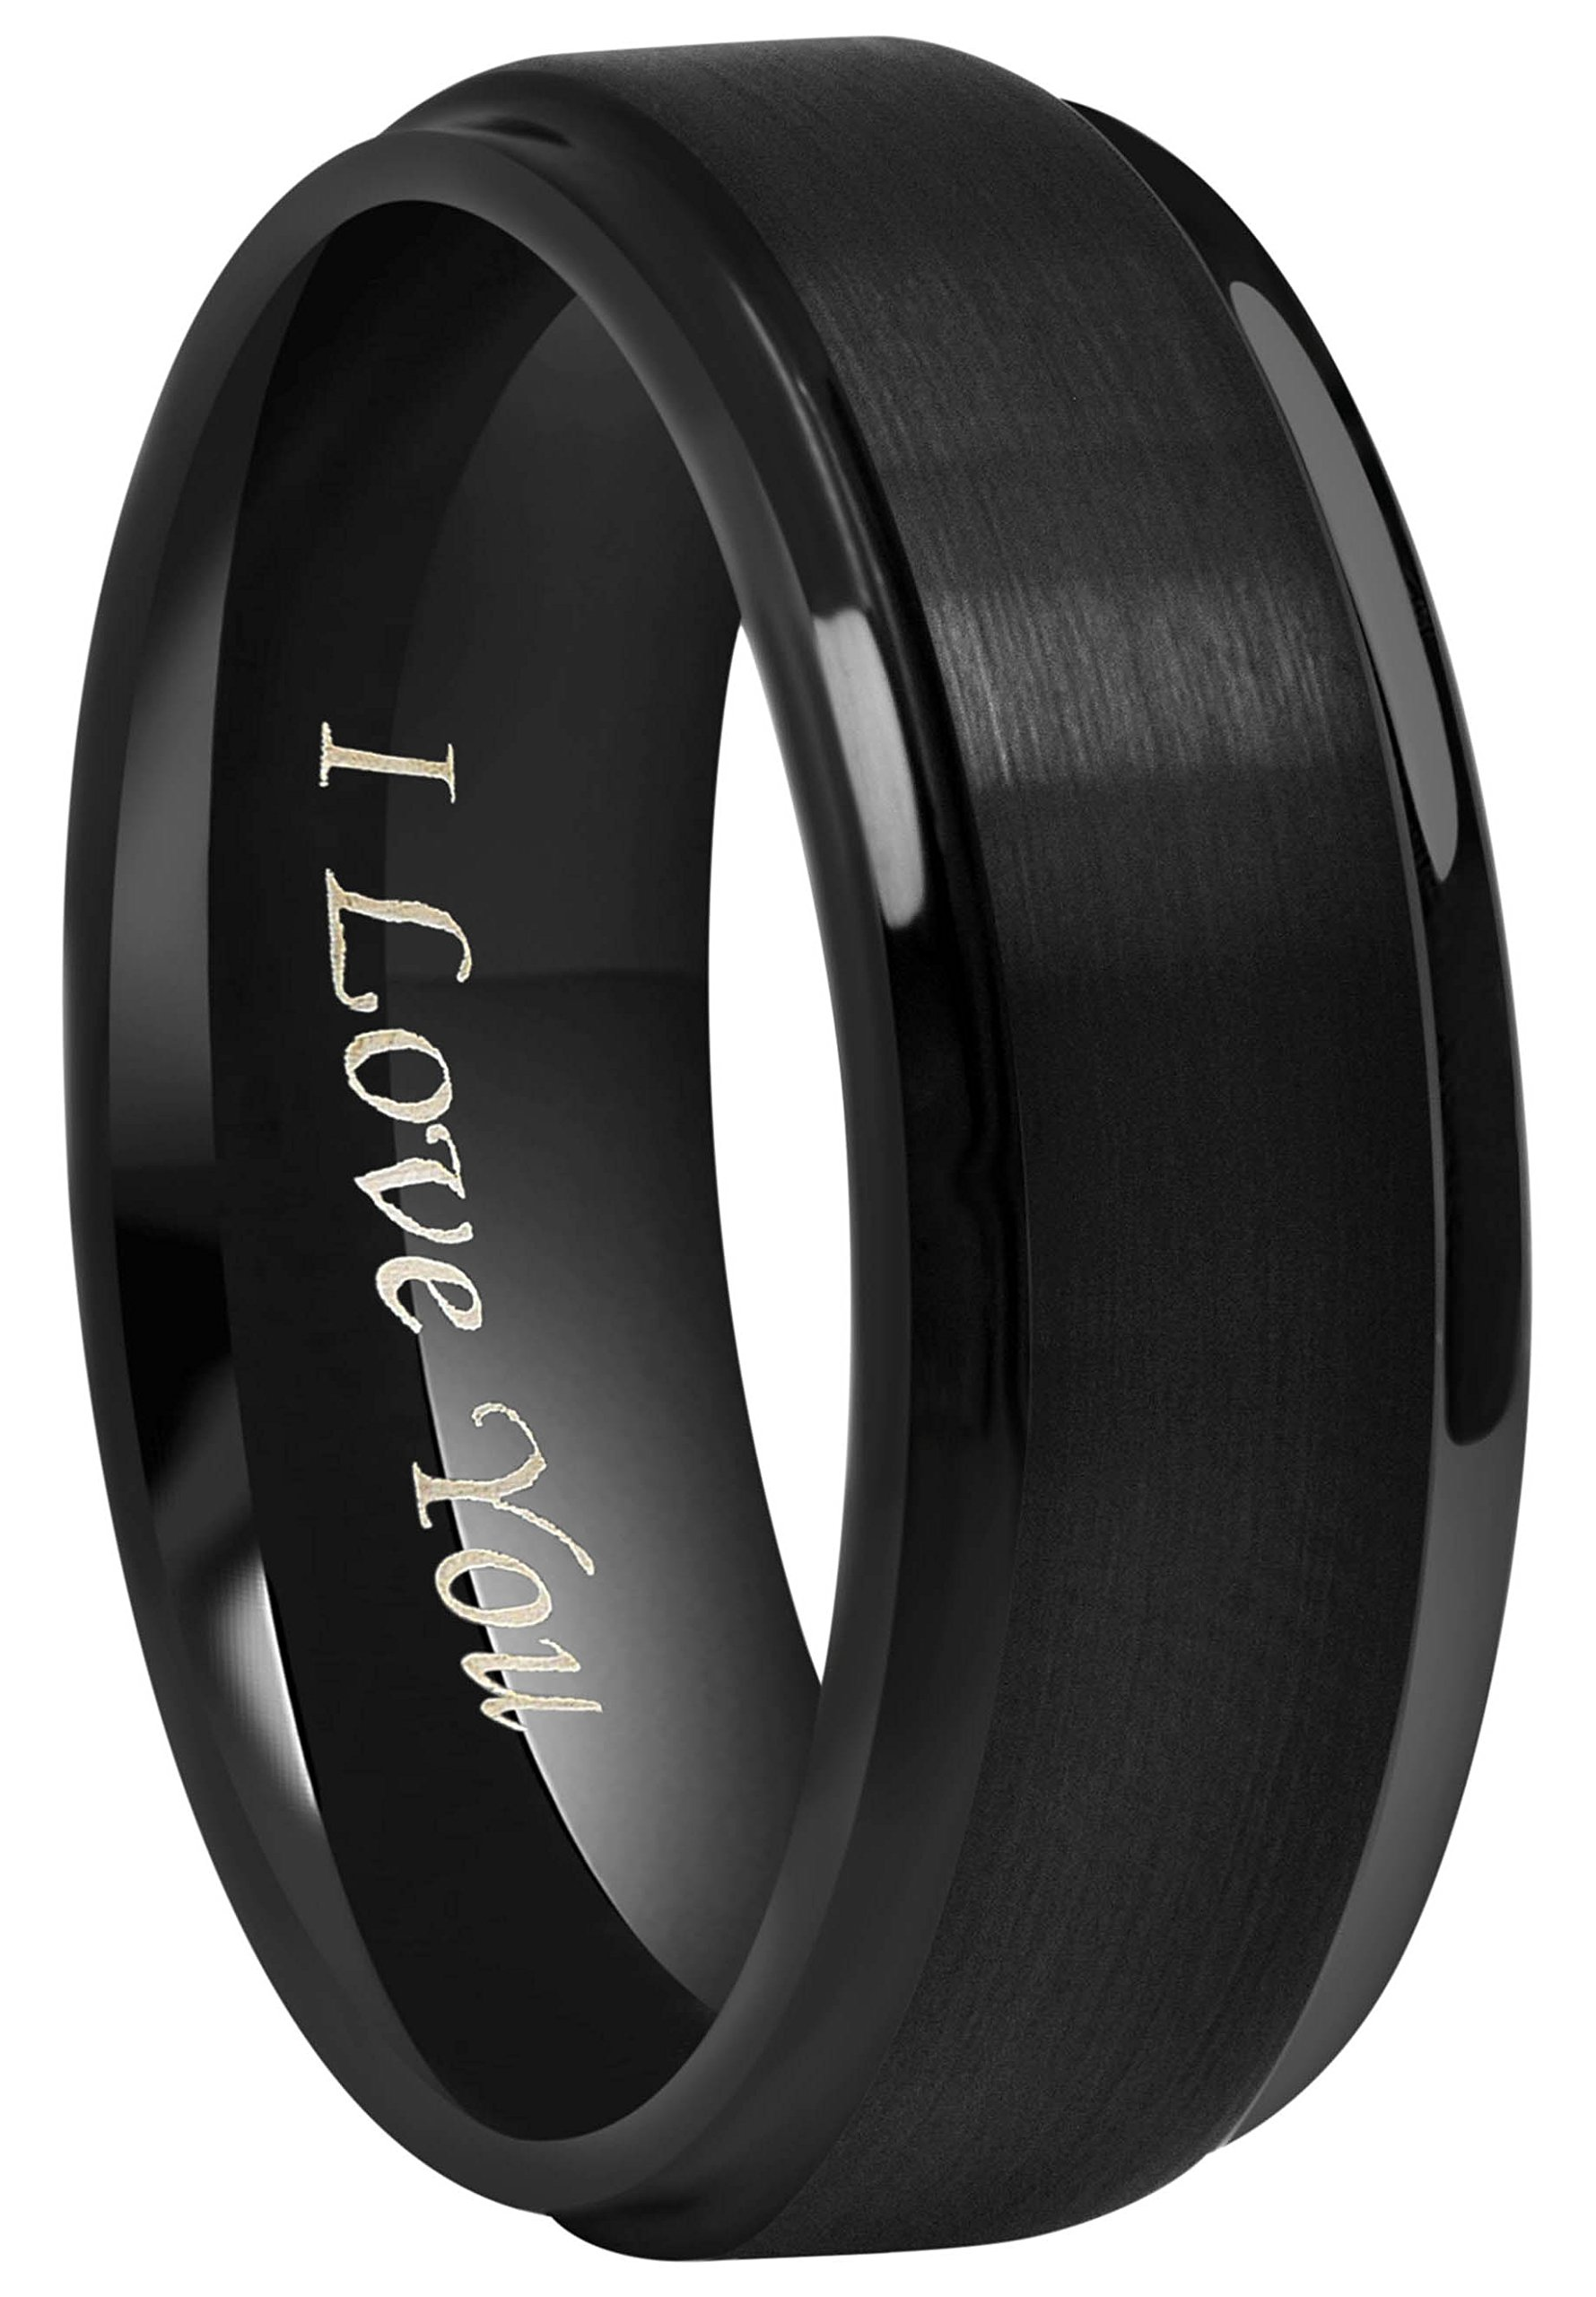 Crownal 6mm 8mm 10mm Black Tungsten Wedding Band Ring Engraved ''I Love You'' Men Women Step Down Edges Brushed Finish (8mm,12.5)